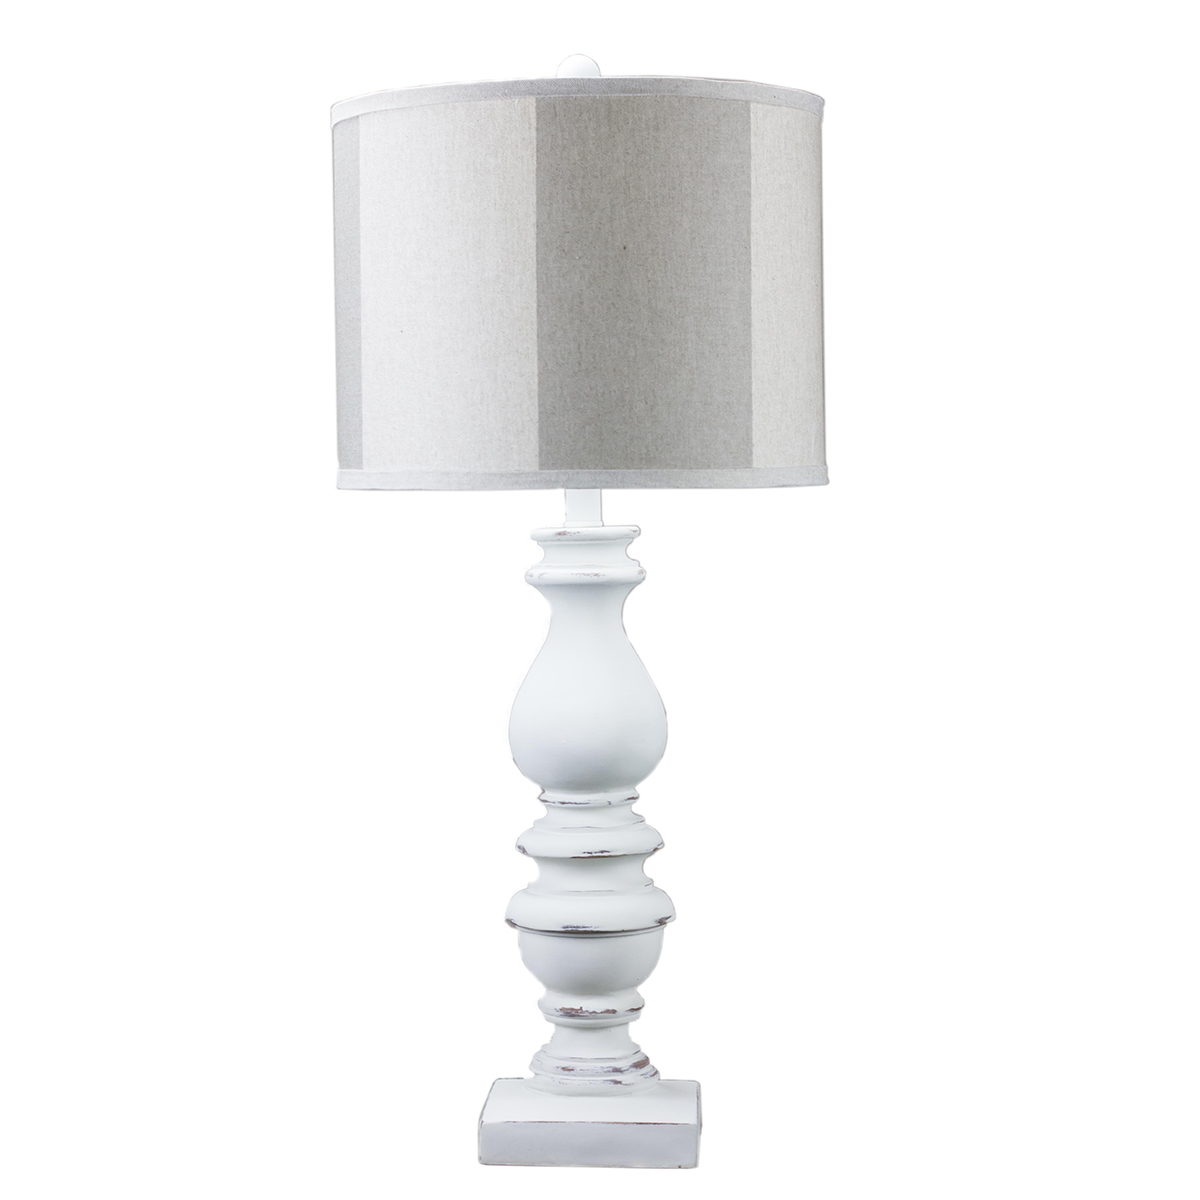 White Candlestick Table Lamp